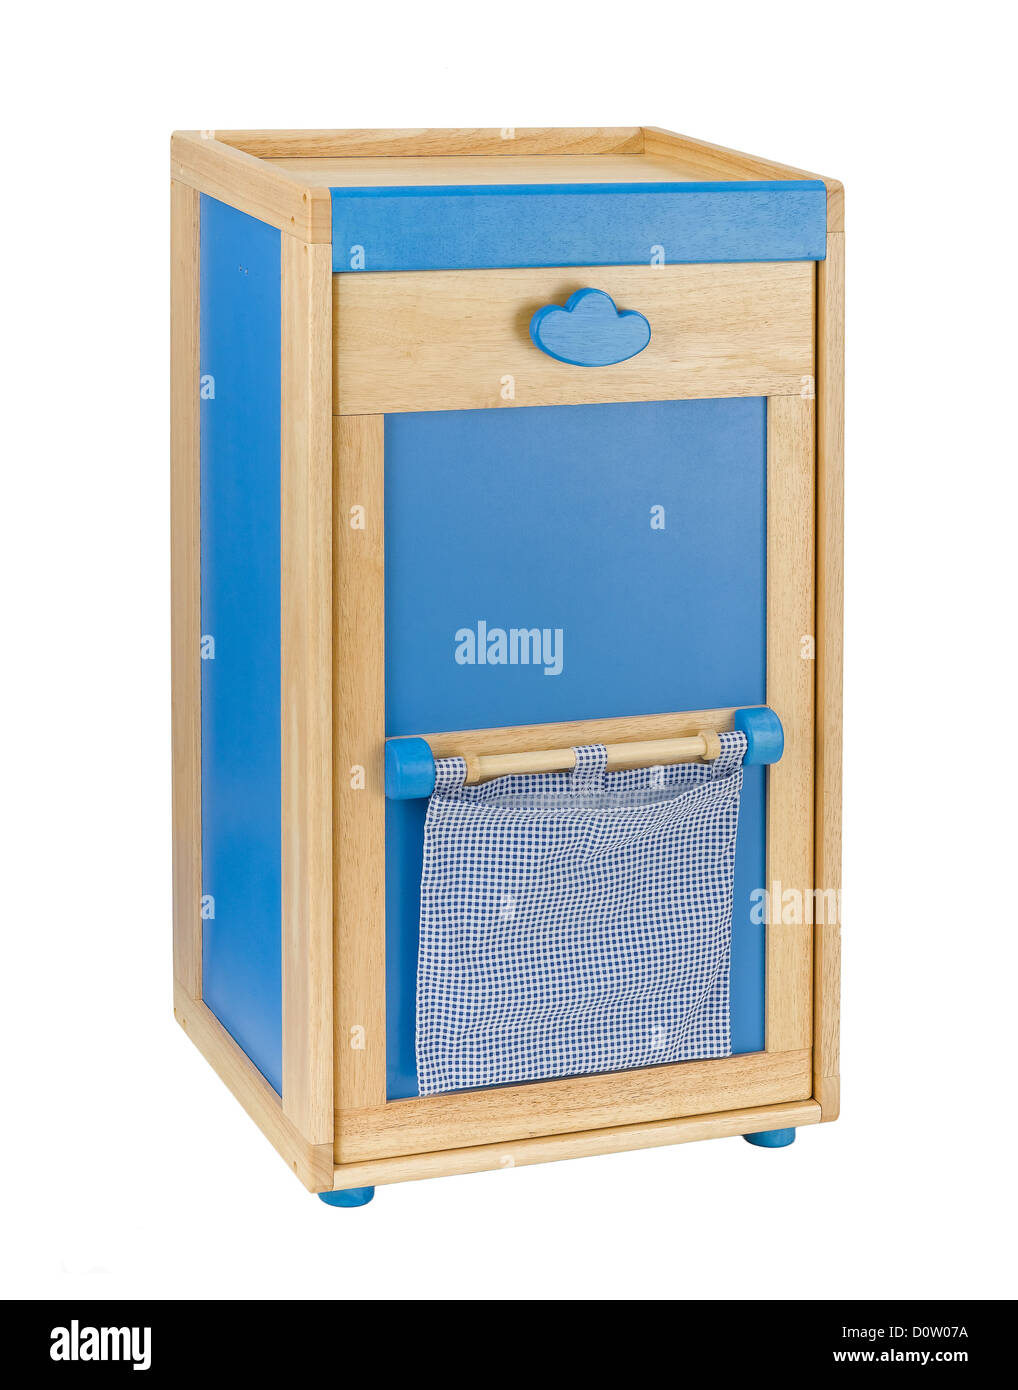 Wooden Cabinet For Kids To Keeping There Toys Or Stuffs Stock Photo